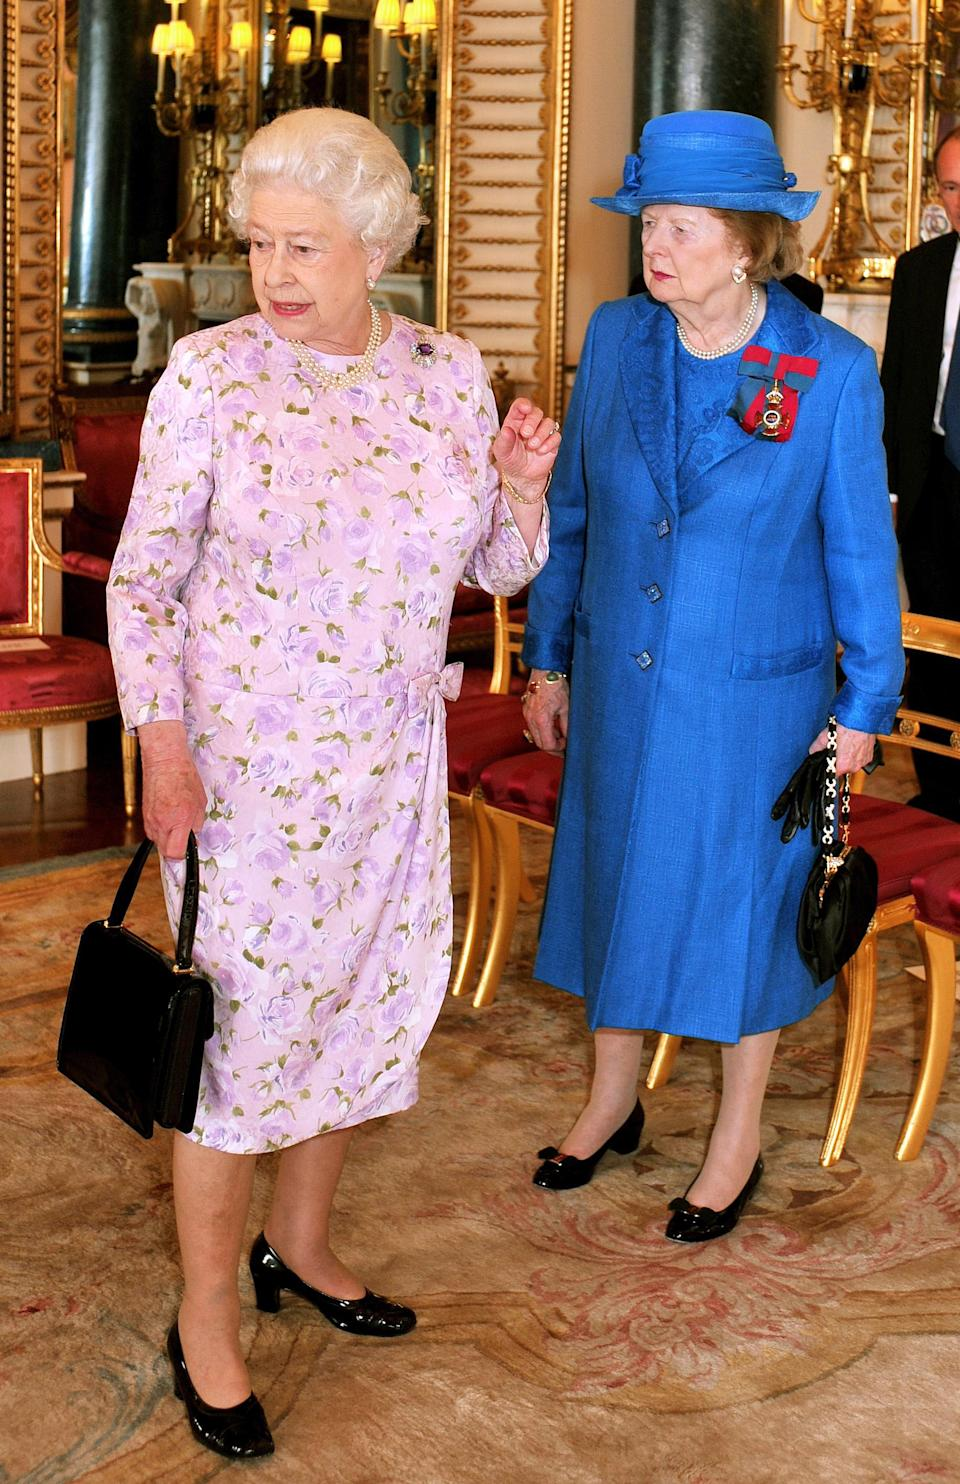 Queen Elizabeth II (left) and Baroness Margaret Thatcher before lunch for members of the Order of Merit at Buckingham Palace in London.   (Photo by John Stillwell - PA Images/PA Images via Getty Images)